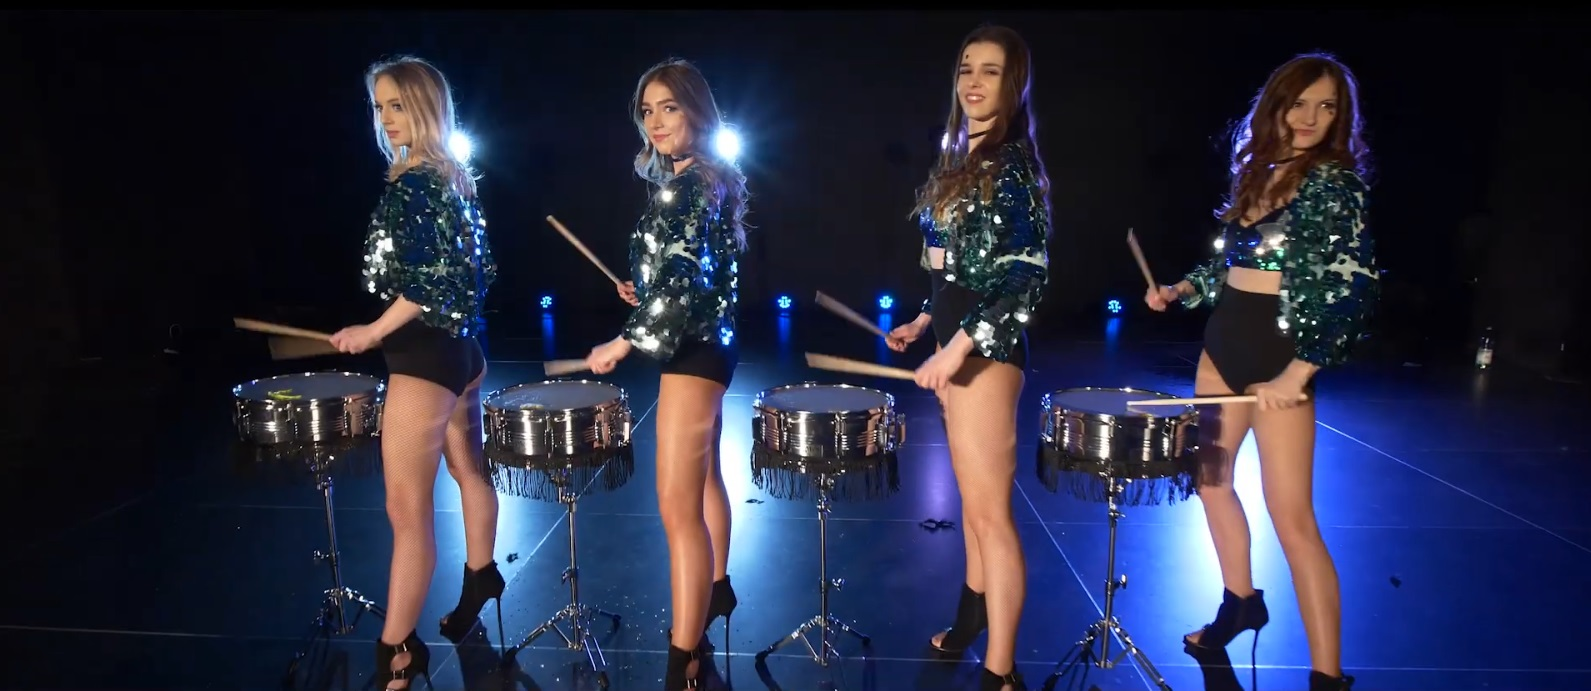 four girls in drum outfits playing on drums